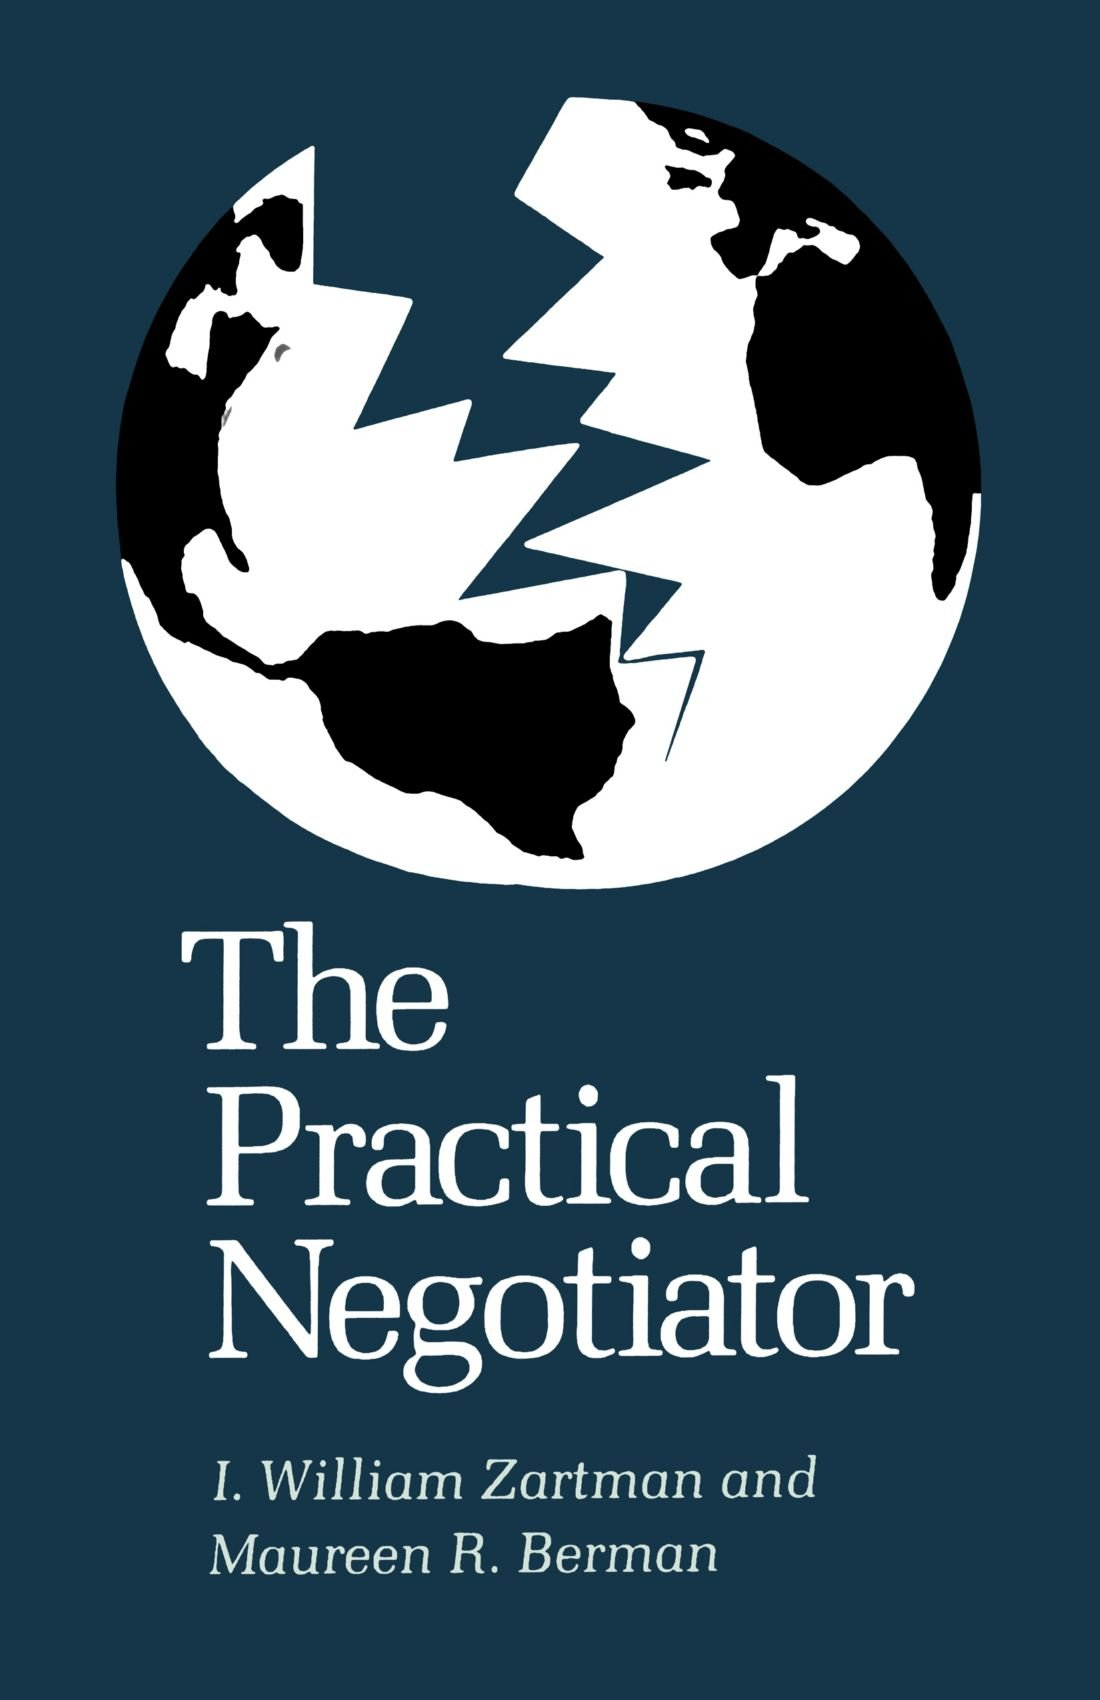 The Practical Negotiator by Yale University Press